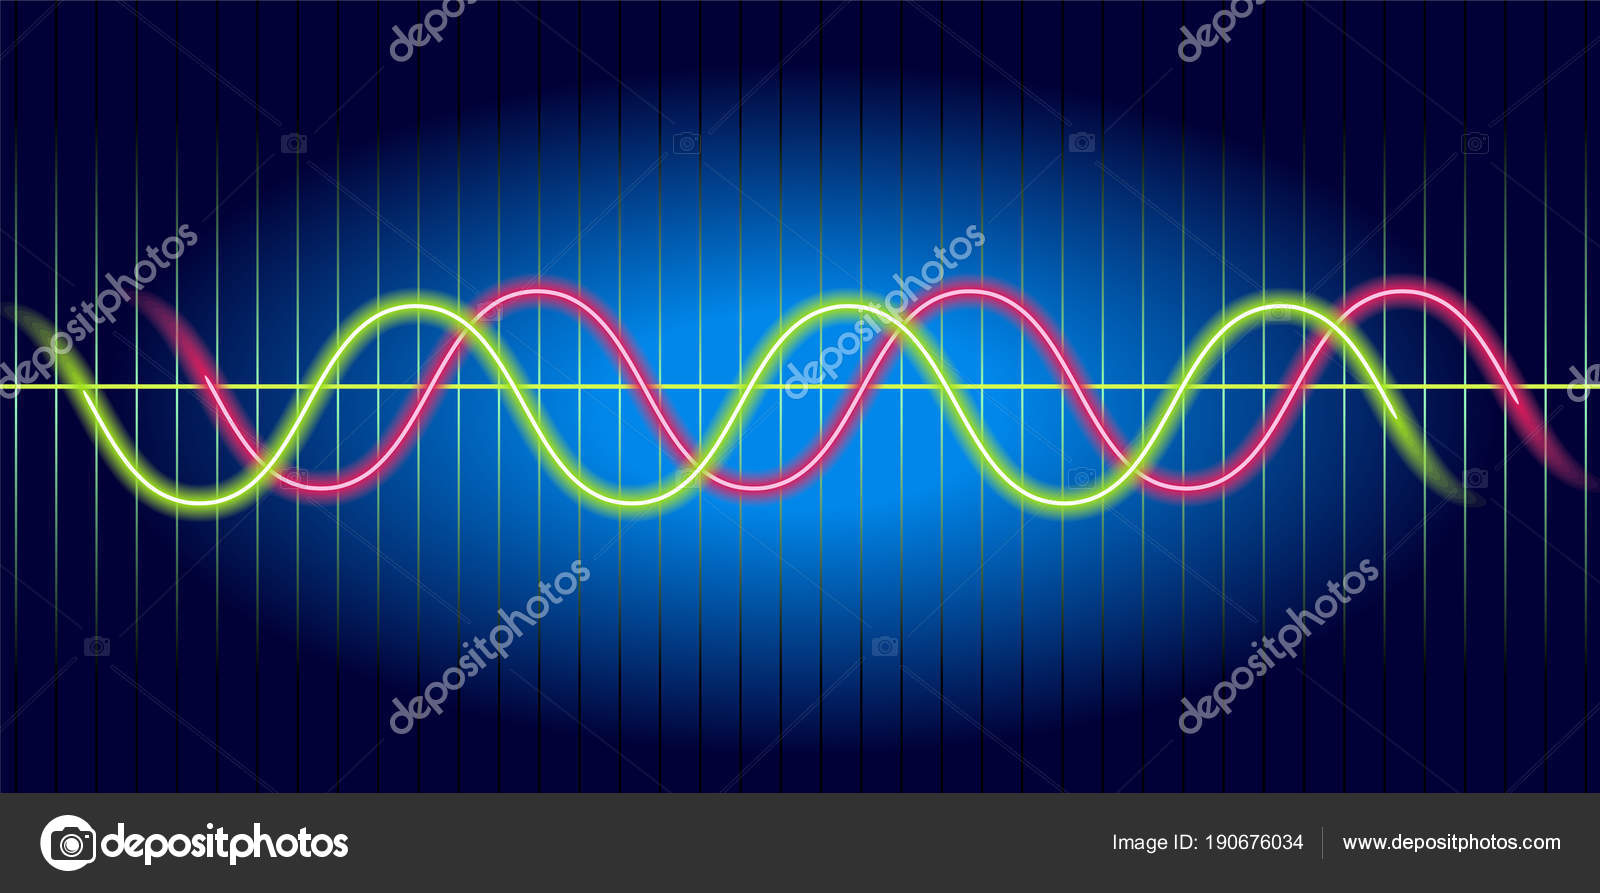 Neon wave graph  Oscilloscope with image of wave diagram